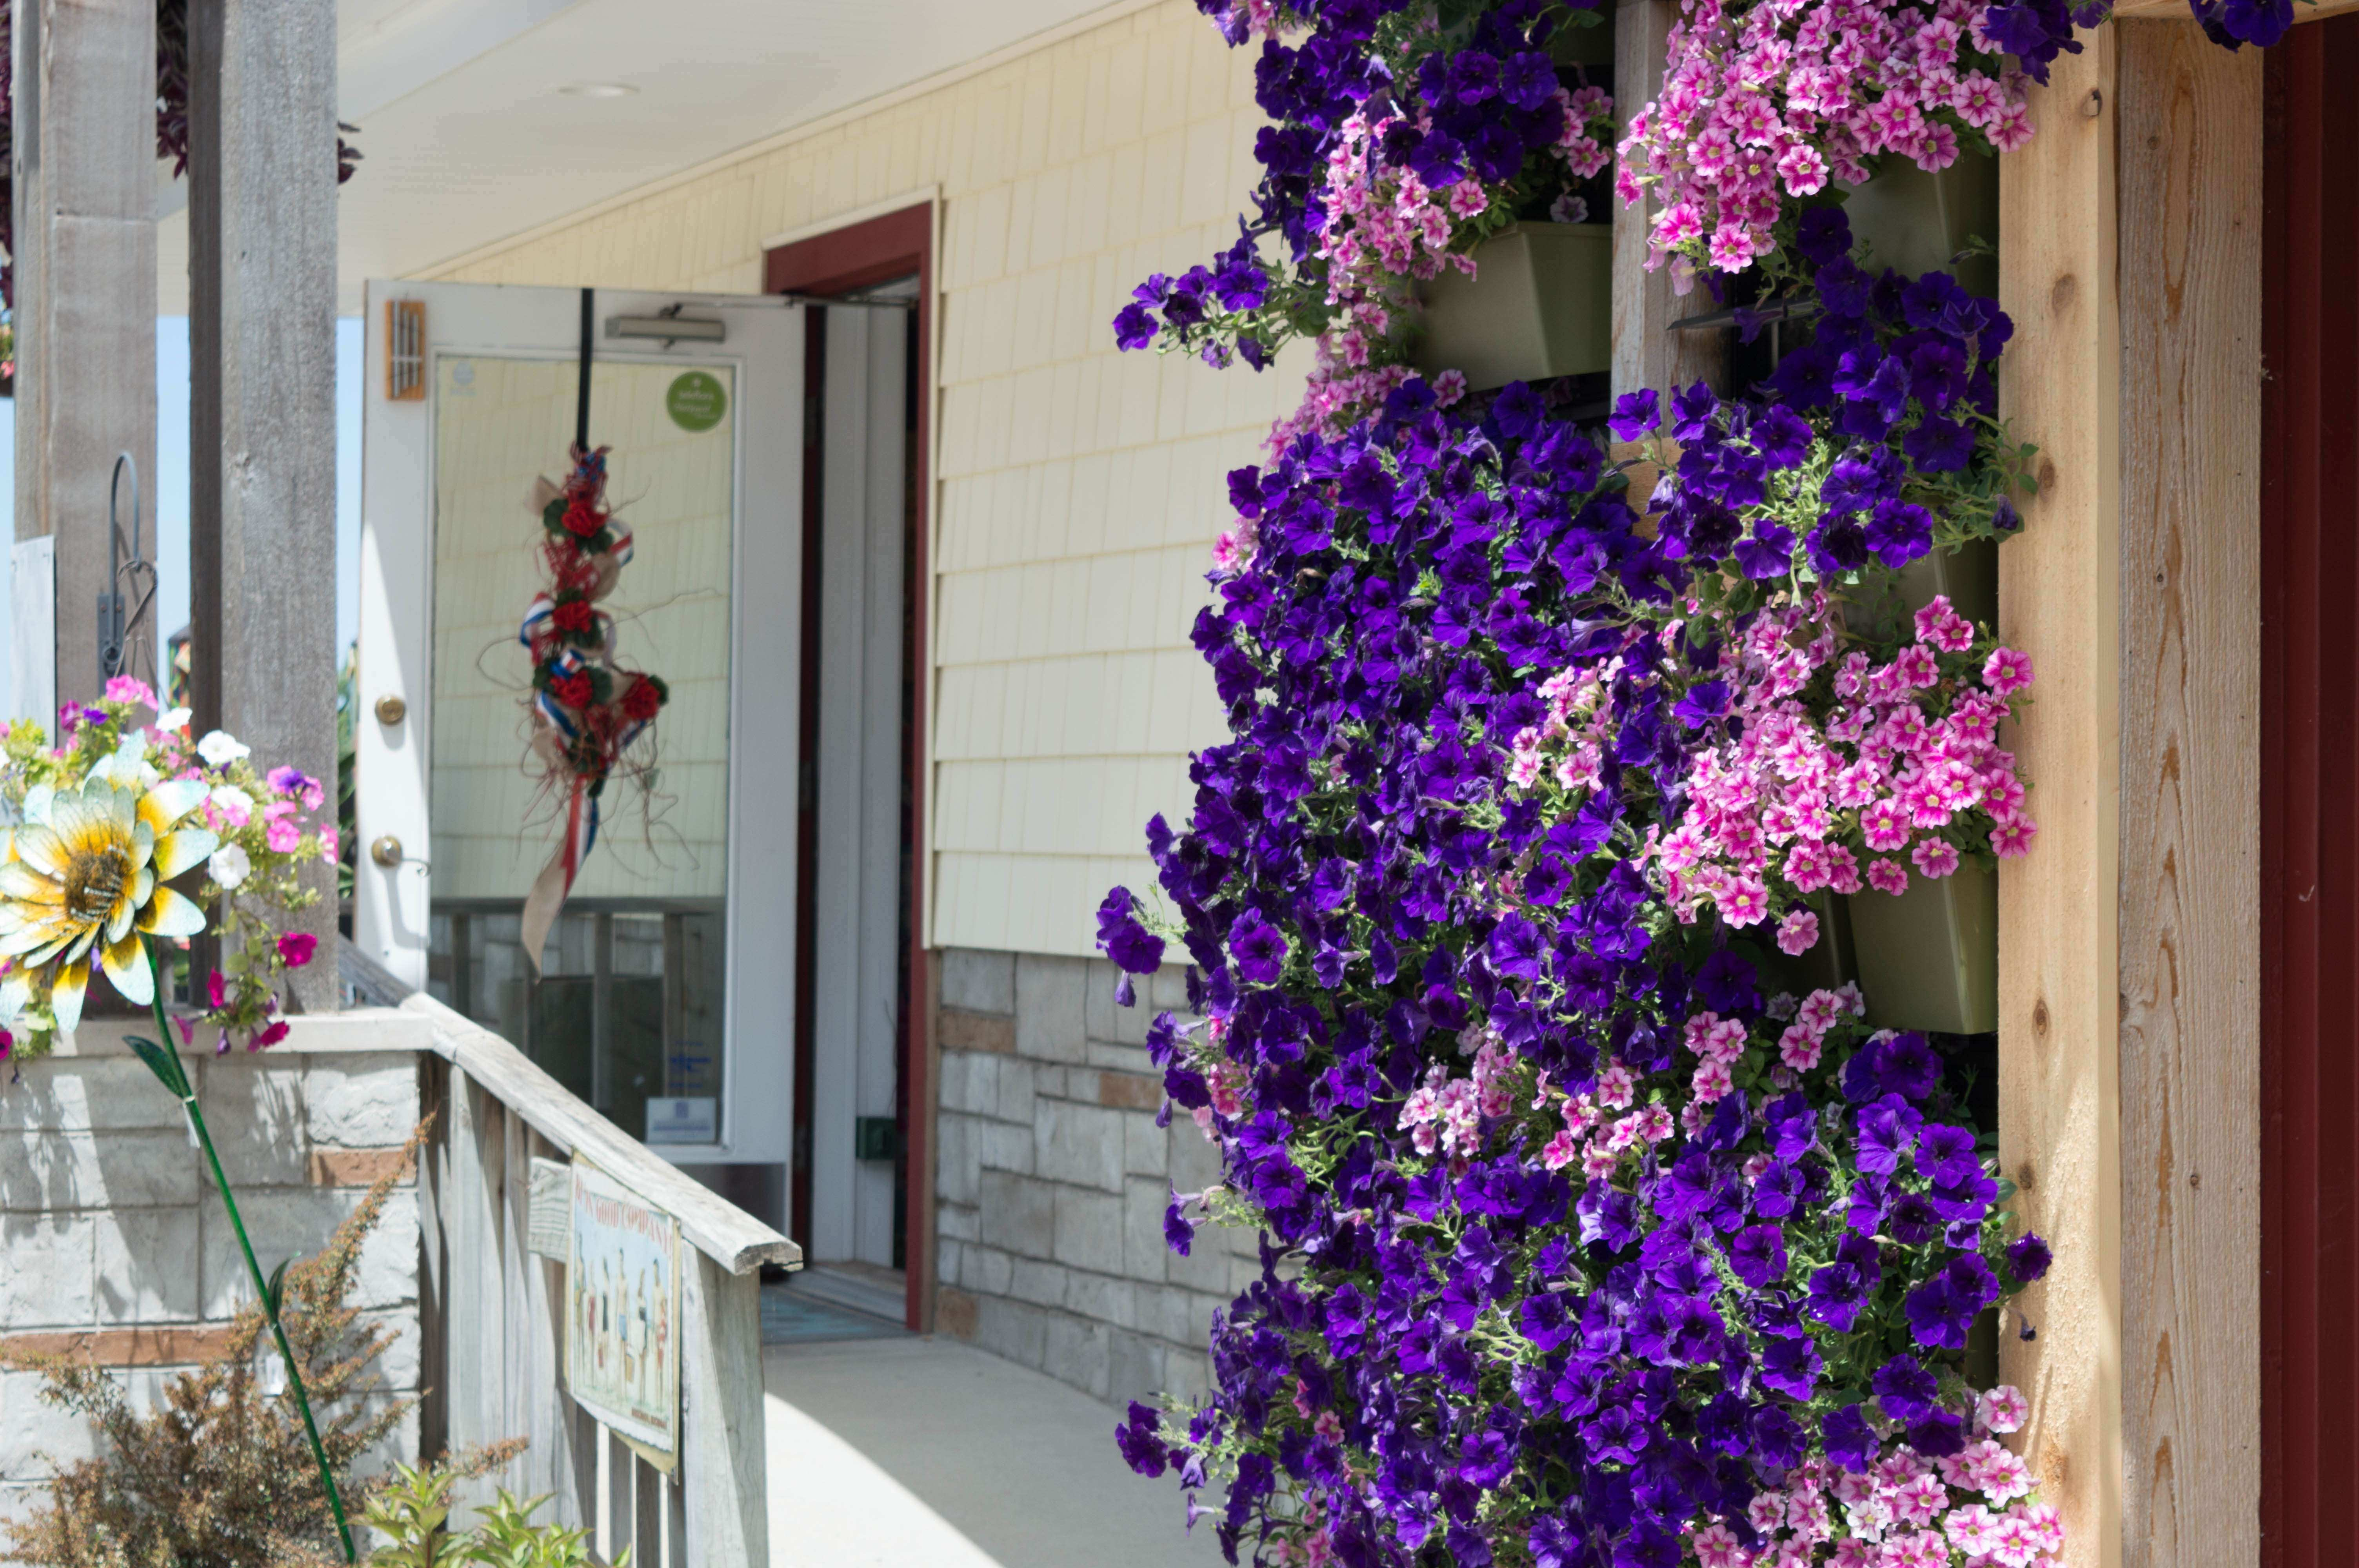 New Living Wall Added to Wasserman s Flowers & Gifts of Muskegon